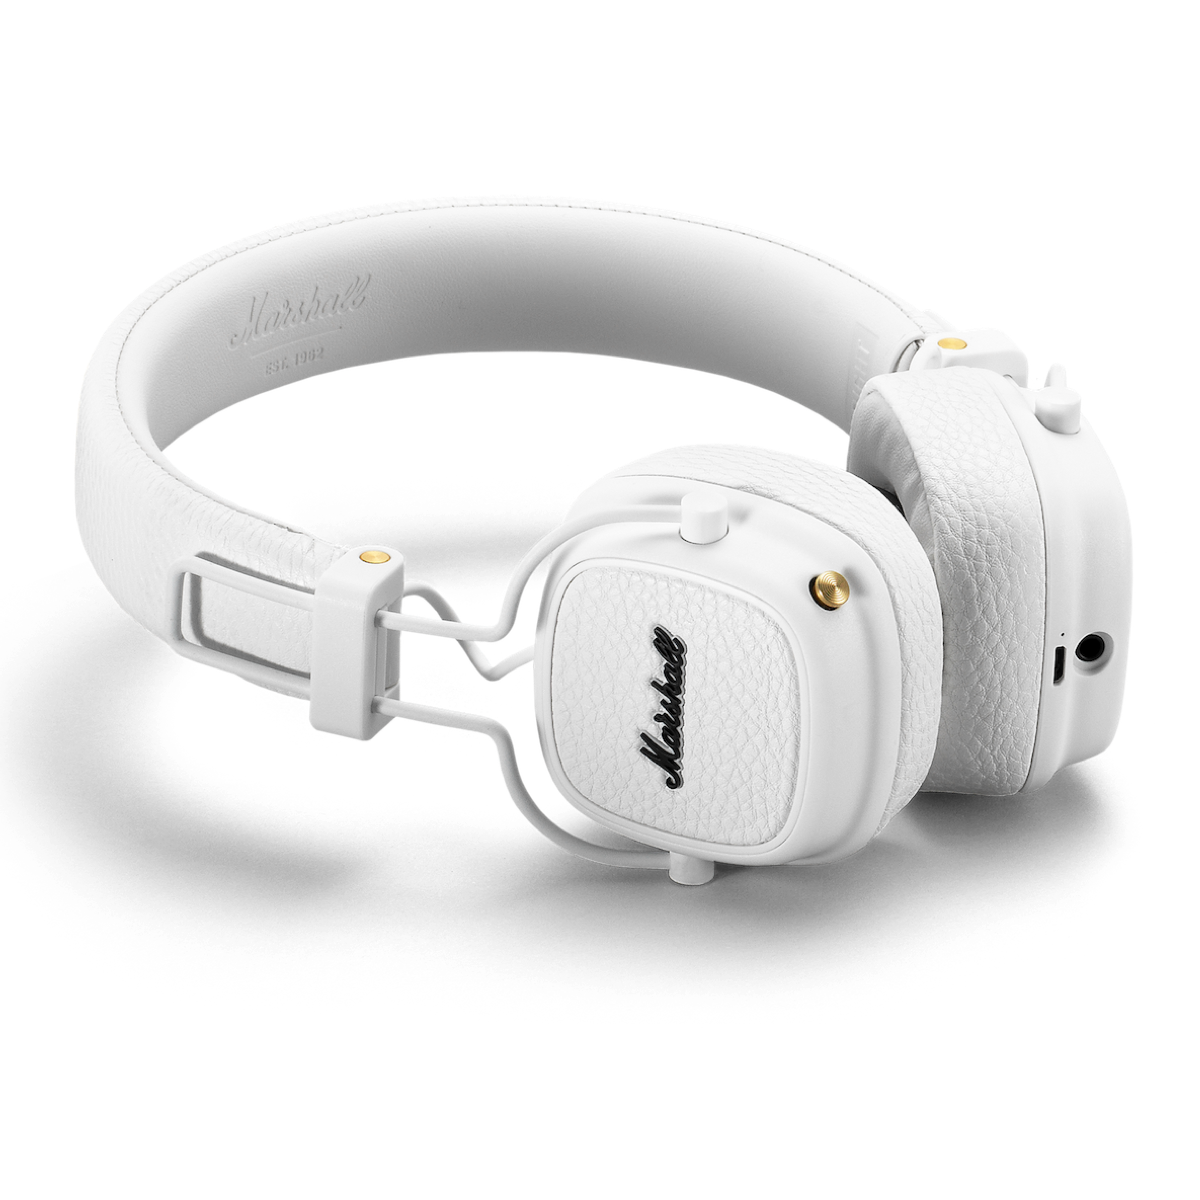 Marshall Major III - Bluetooth Headphone, Marshall, Wireless Headphones - AVStore.in